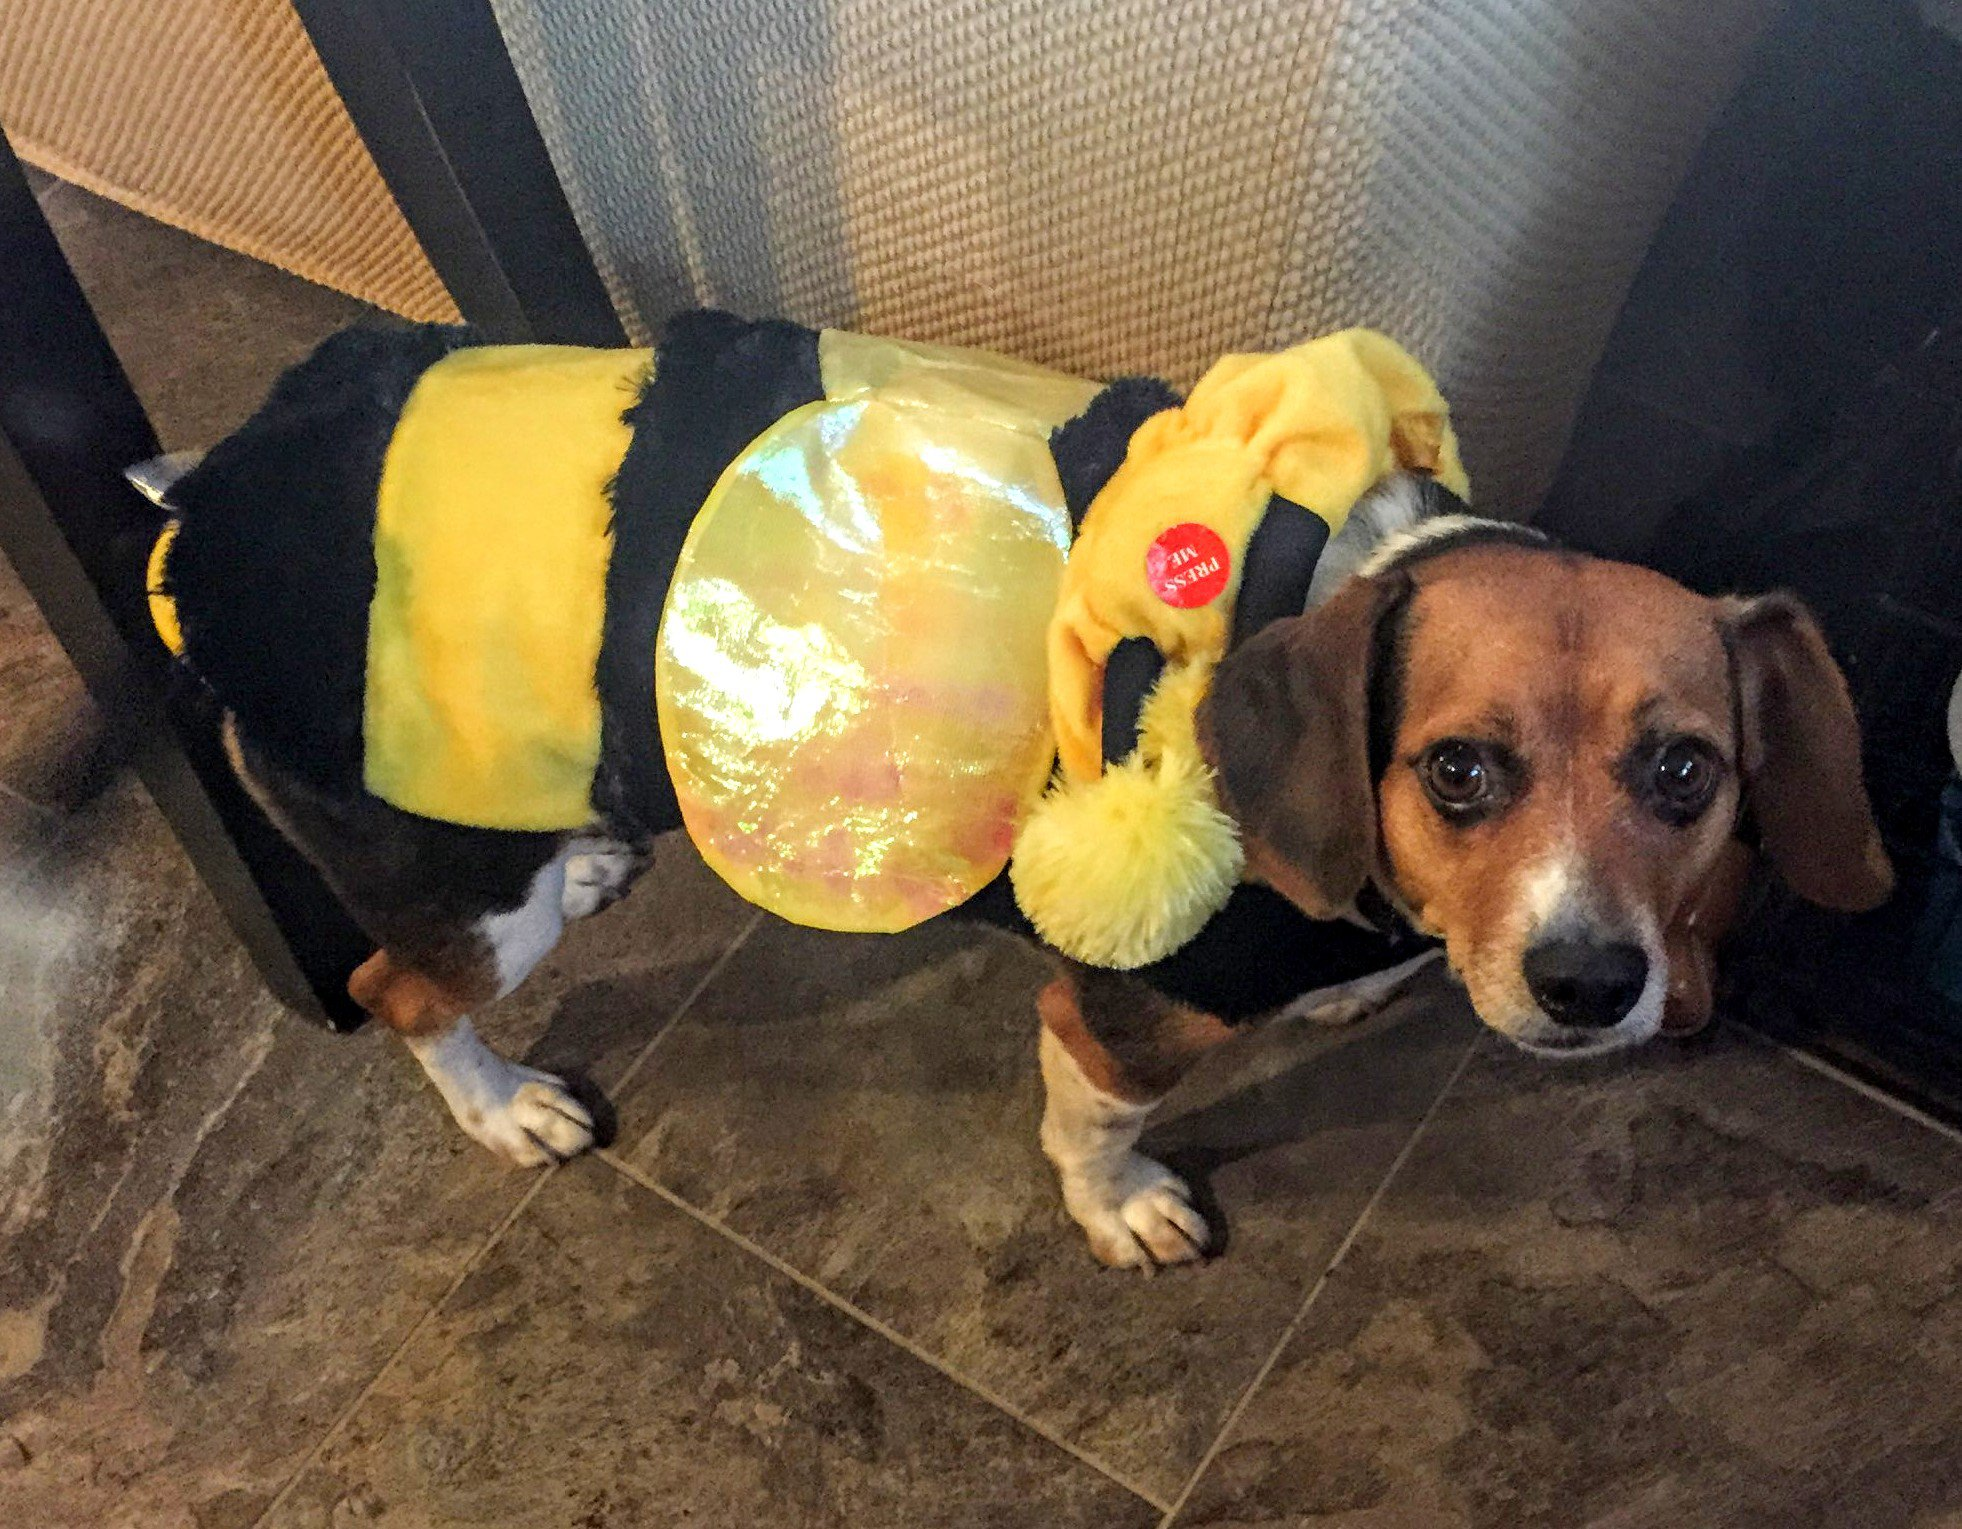 Max as a Yellow Jacket